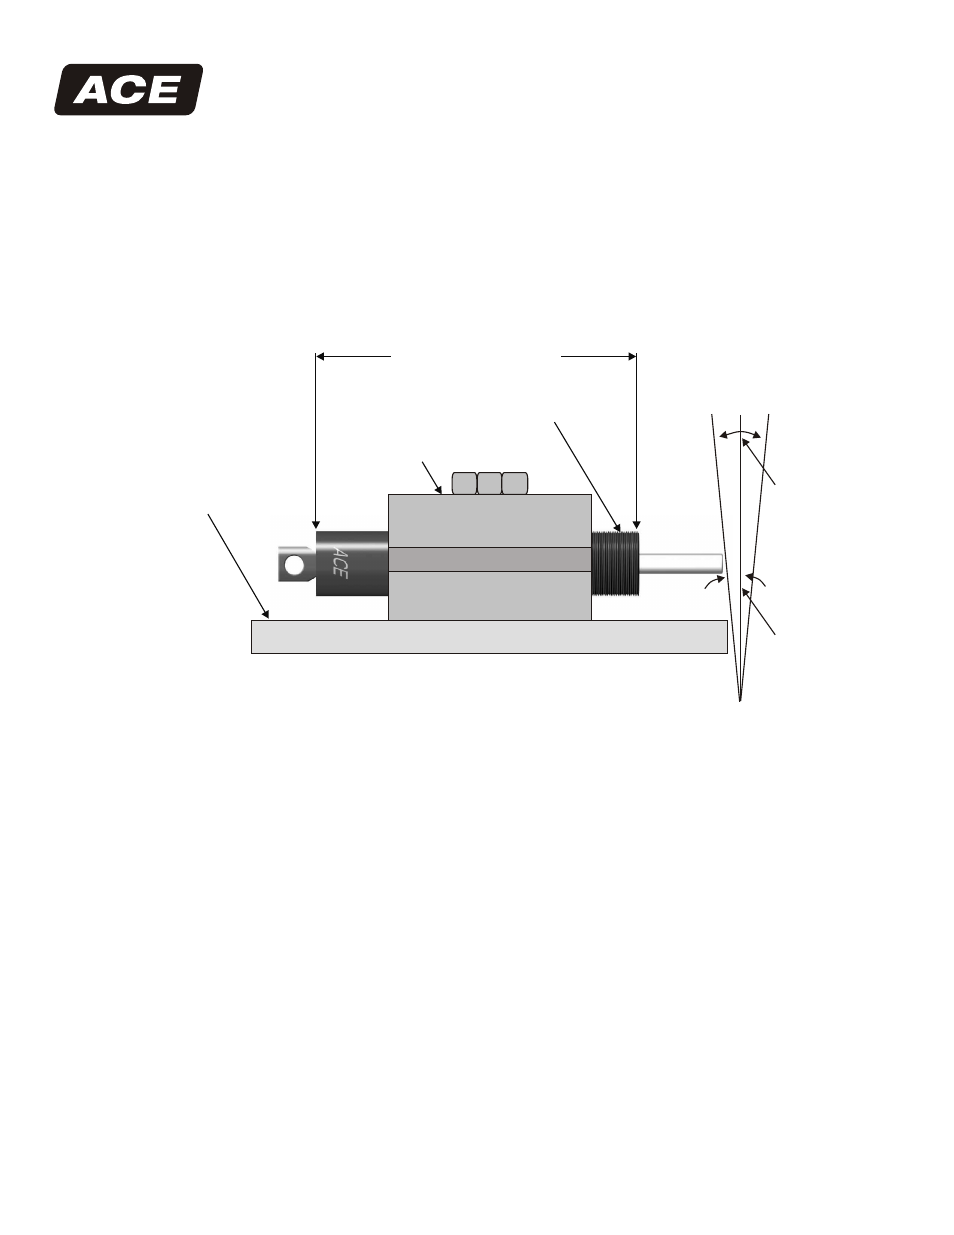 ACE Controls VC Precision Hydraulic Feed Controllers User Manual | 1